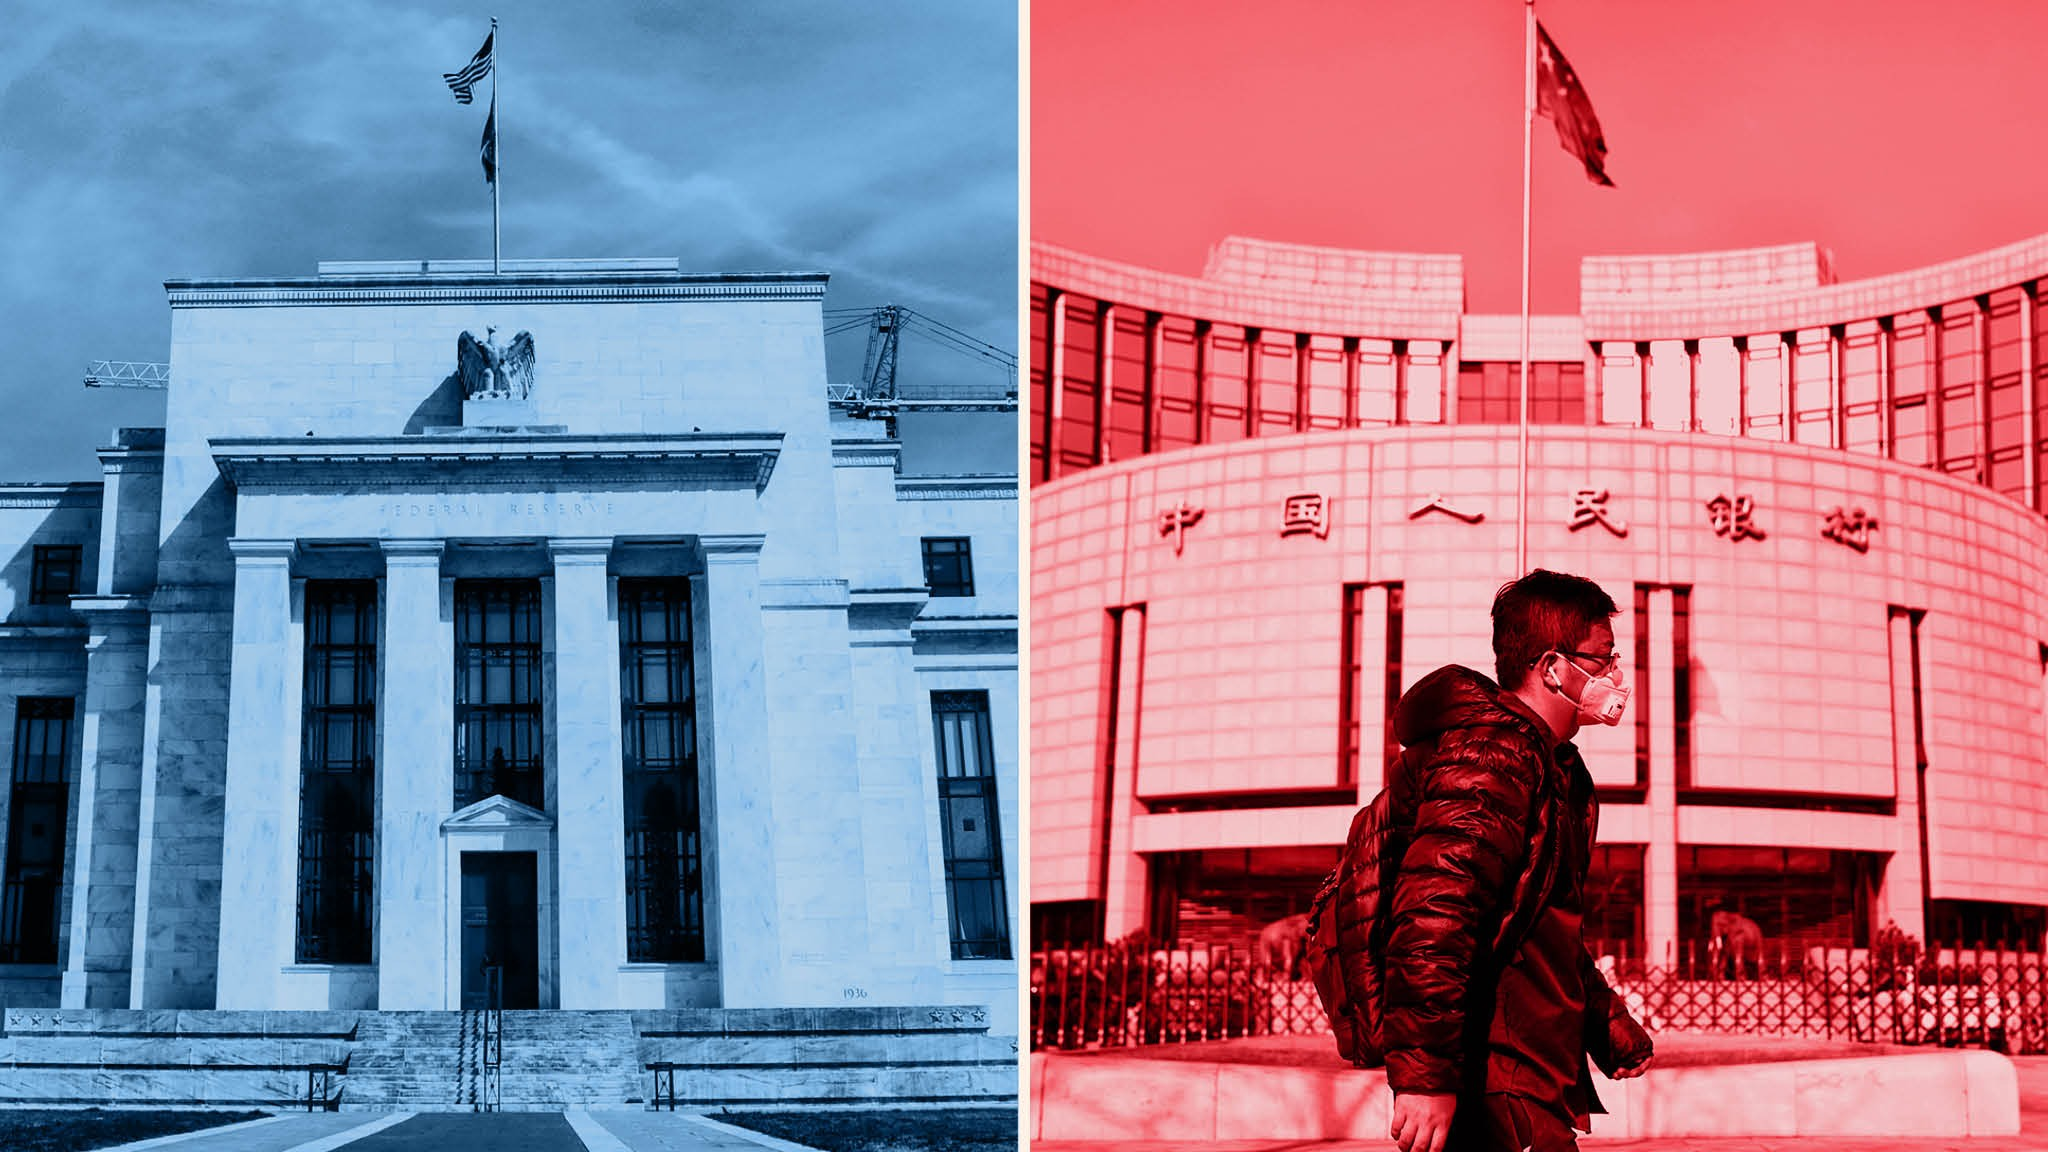 The firepower of central banks is under intense scrutiny as countries look for ways to claw themselves out of recession induced by coronavirus